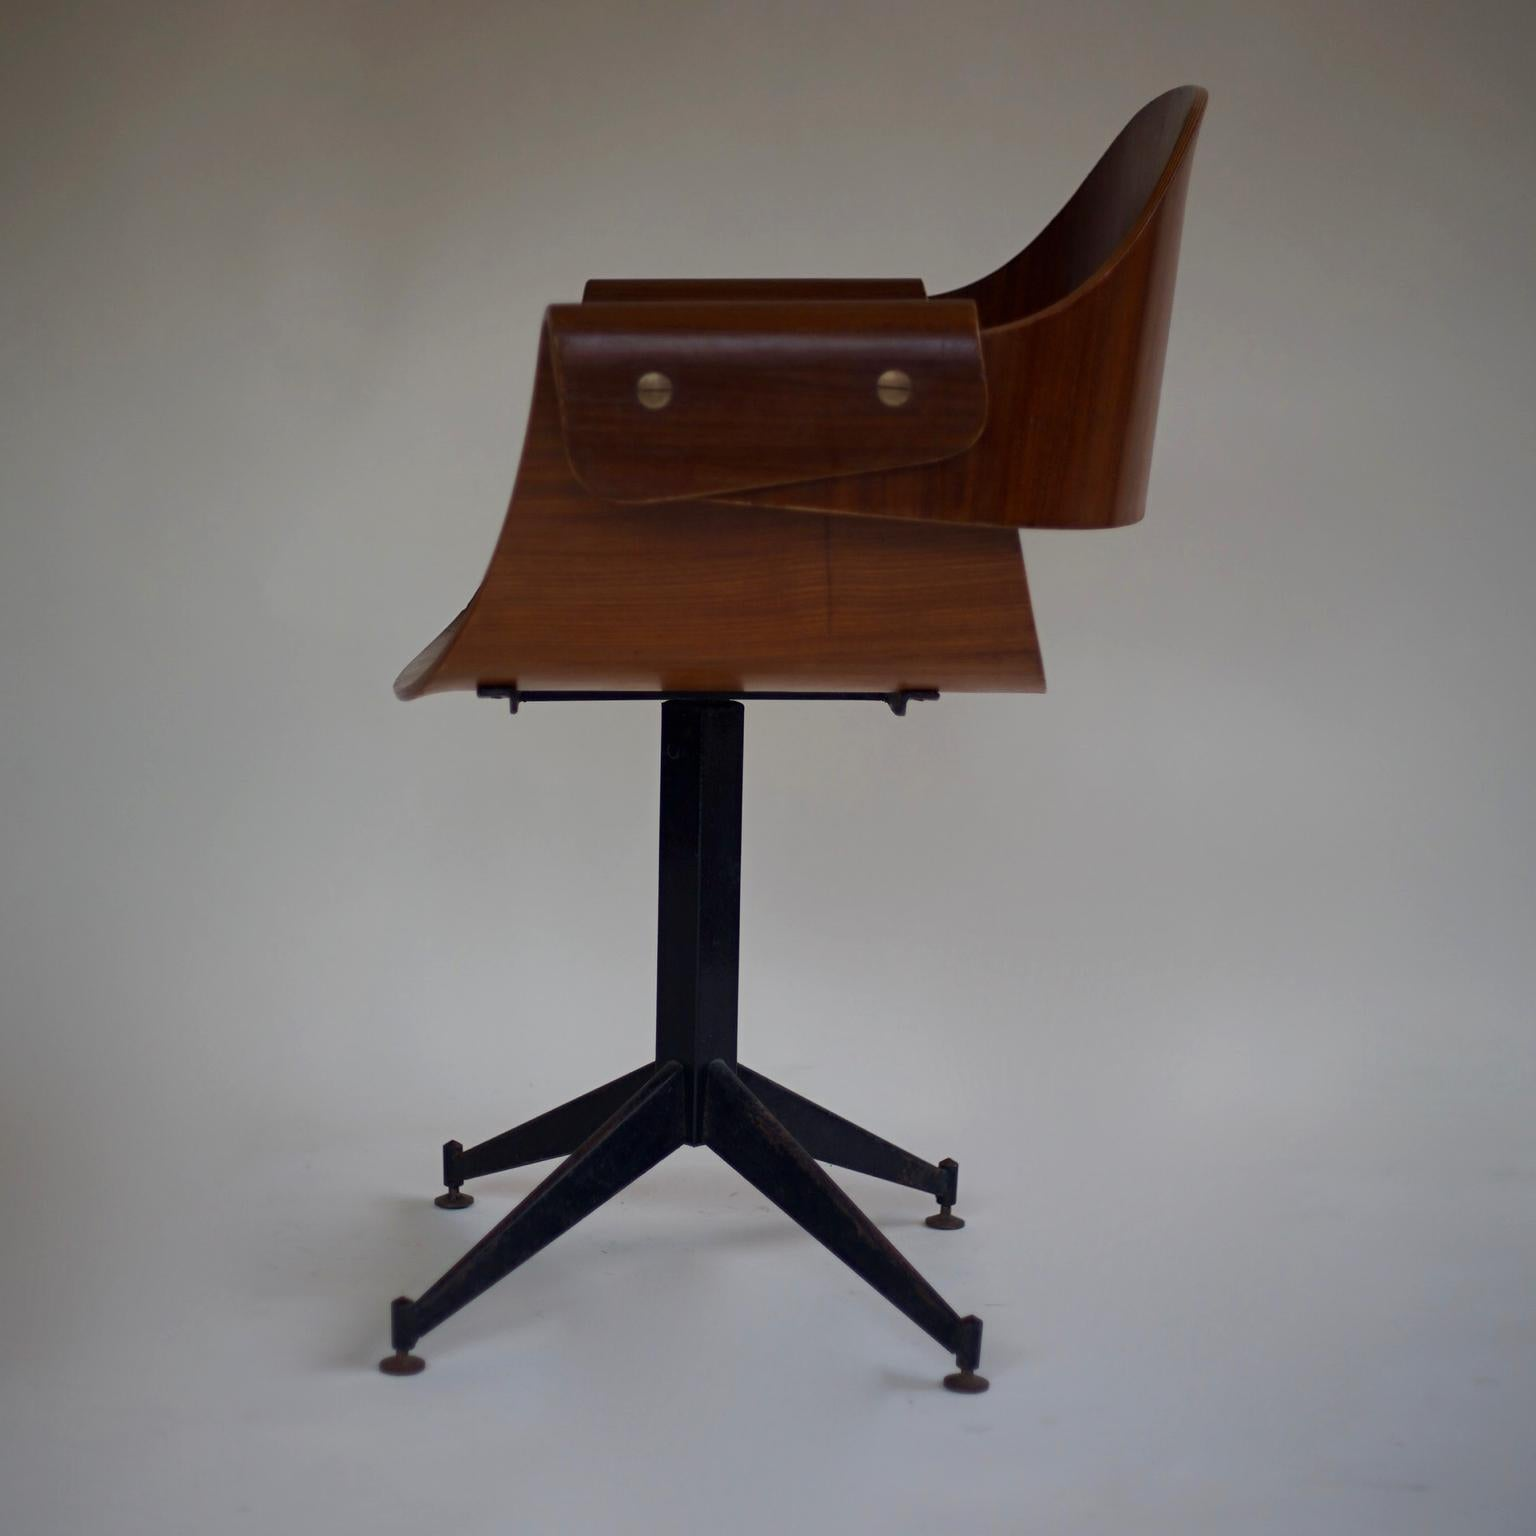 Fabulous 1950S Bent Ply Desk Chair By Carlo Ratti Italy For Sale At Uwap Interior Chair Design Uwaporg